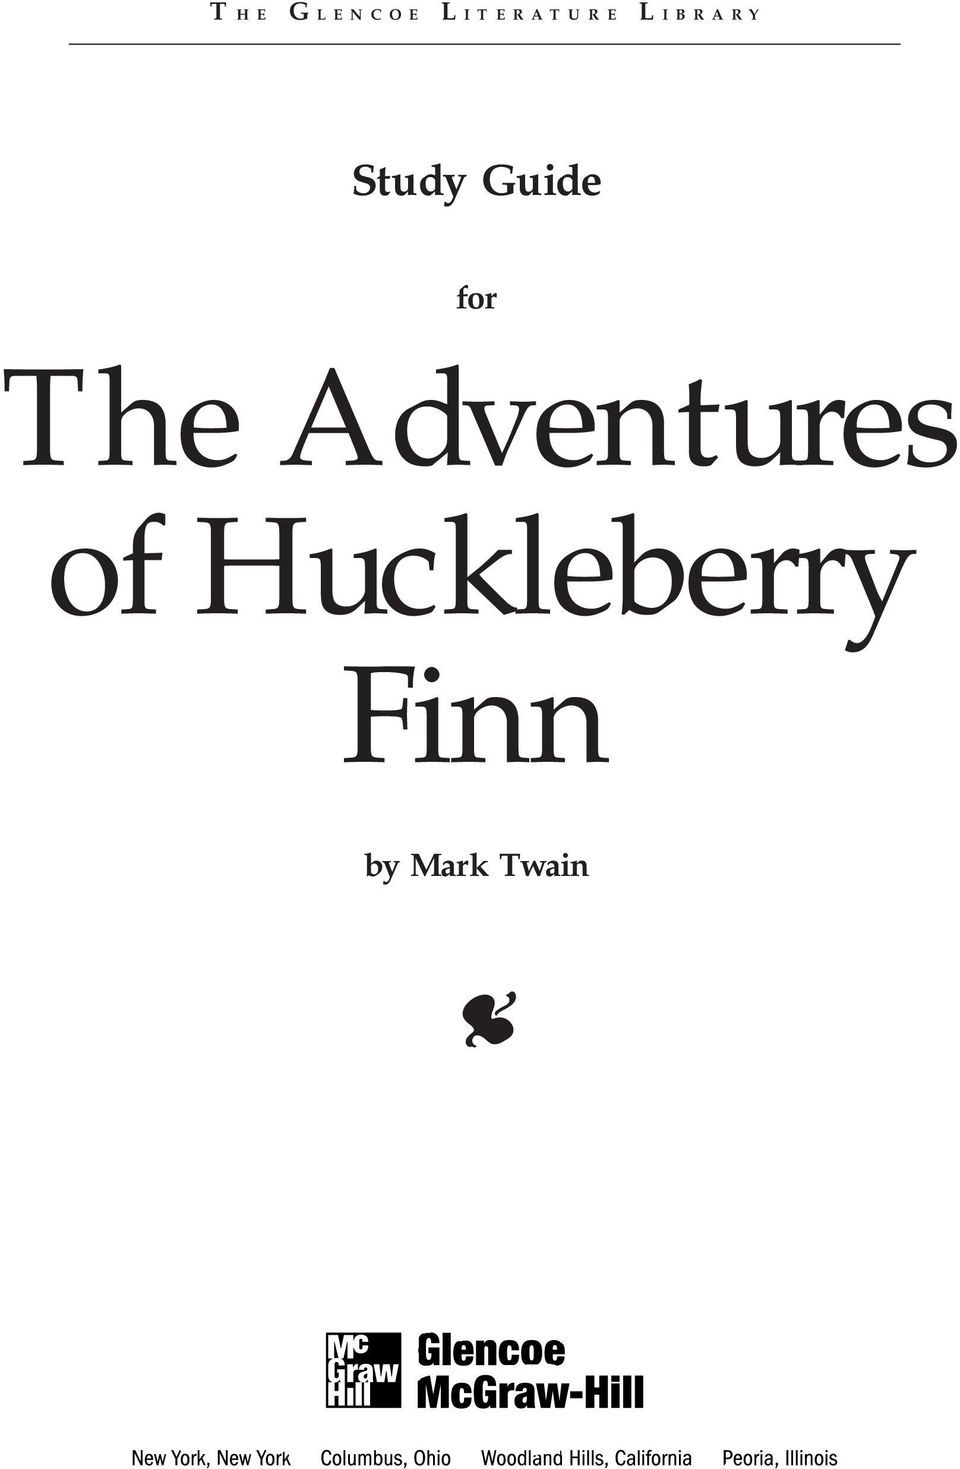 The Adventures of